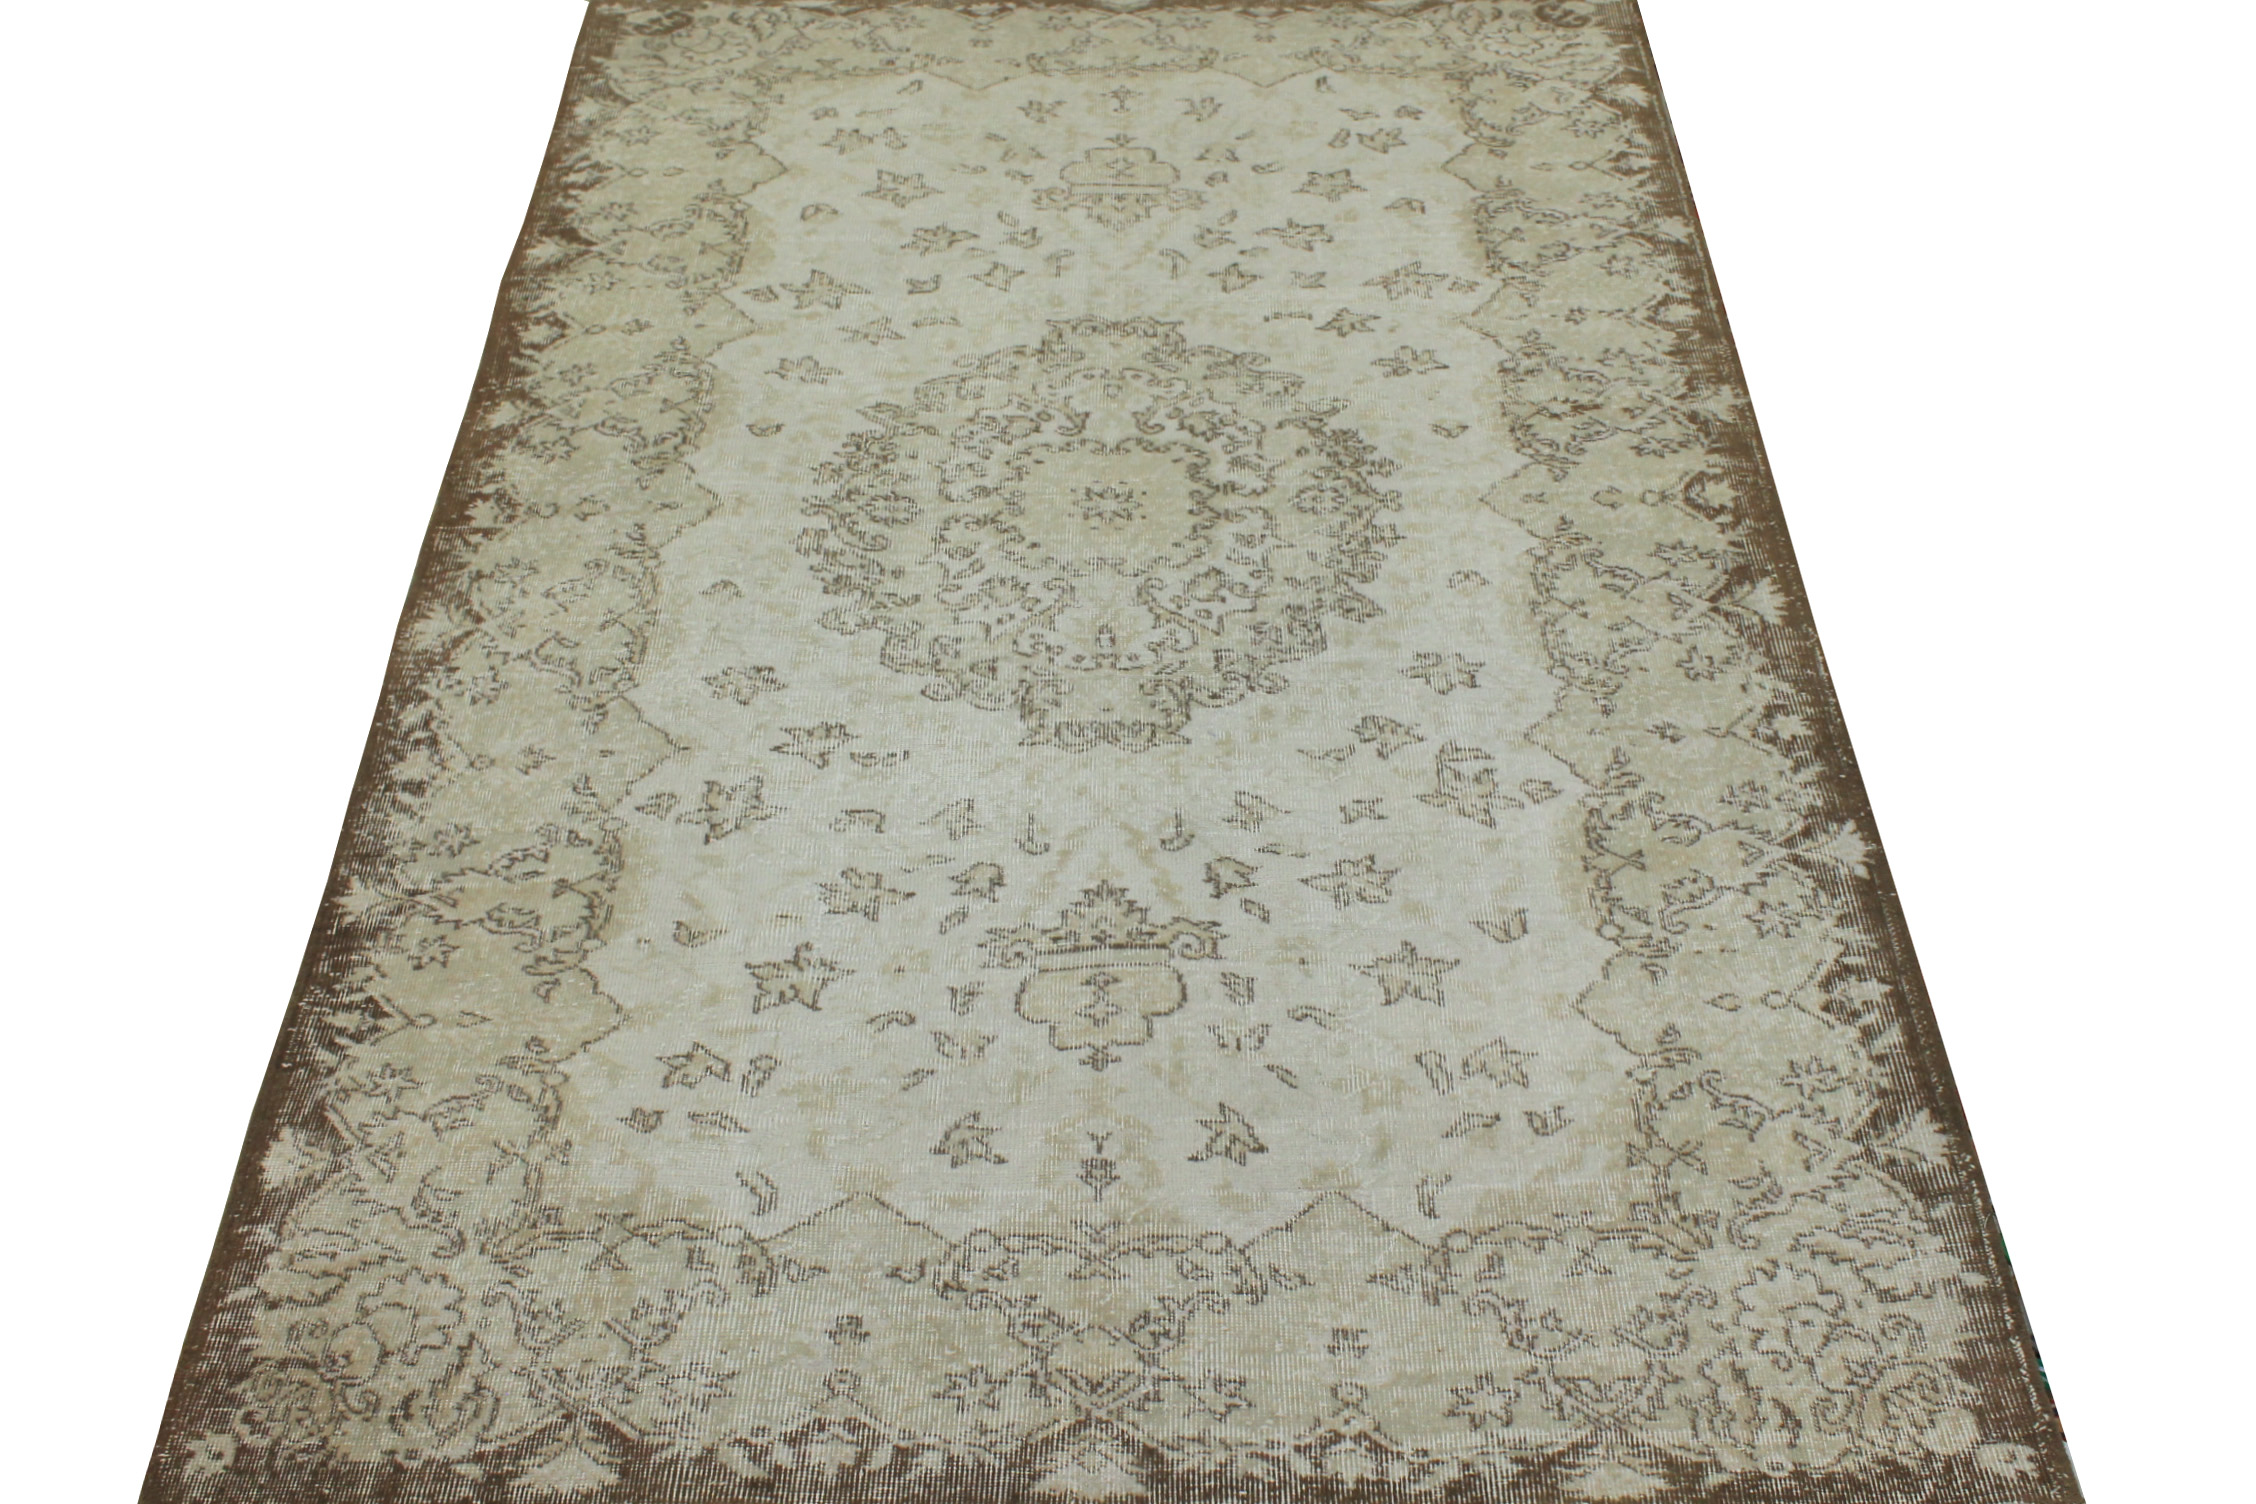 6x9 Oushak Hand Knotted Wool Area Rug - MR16777